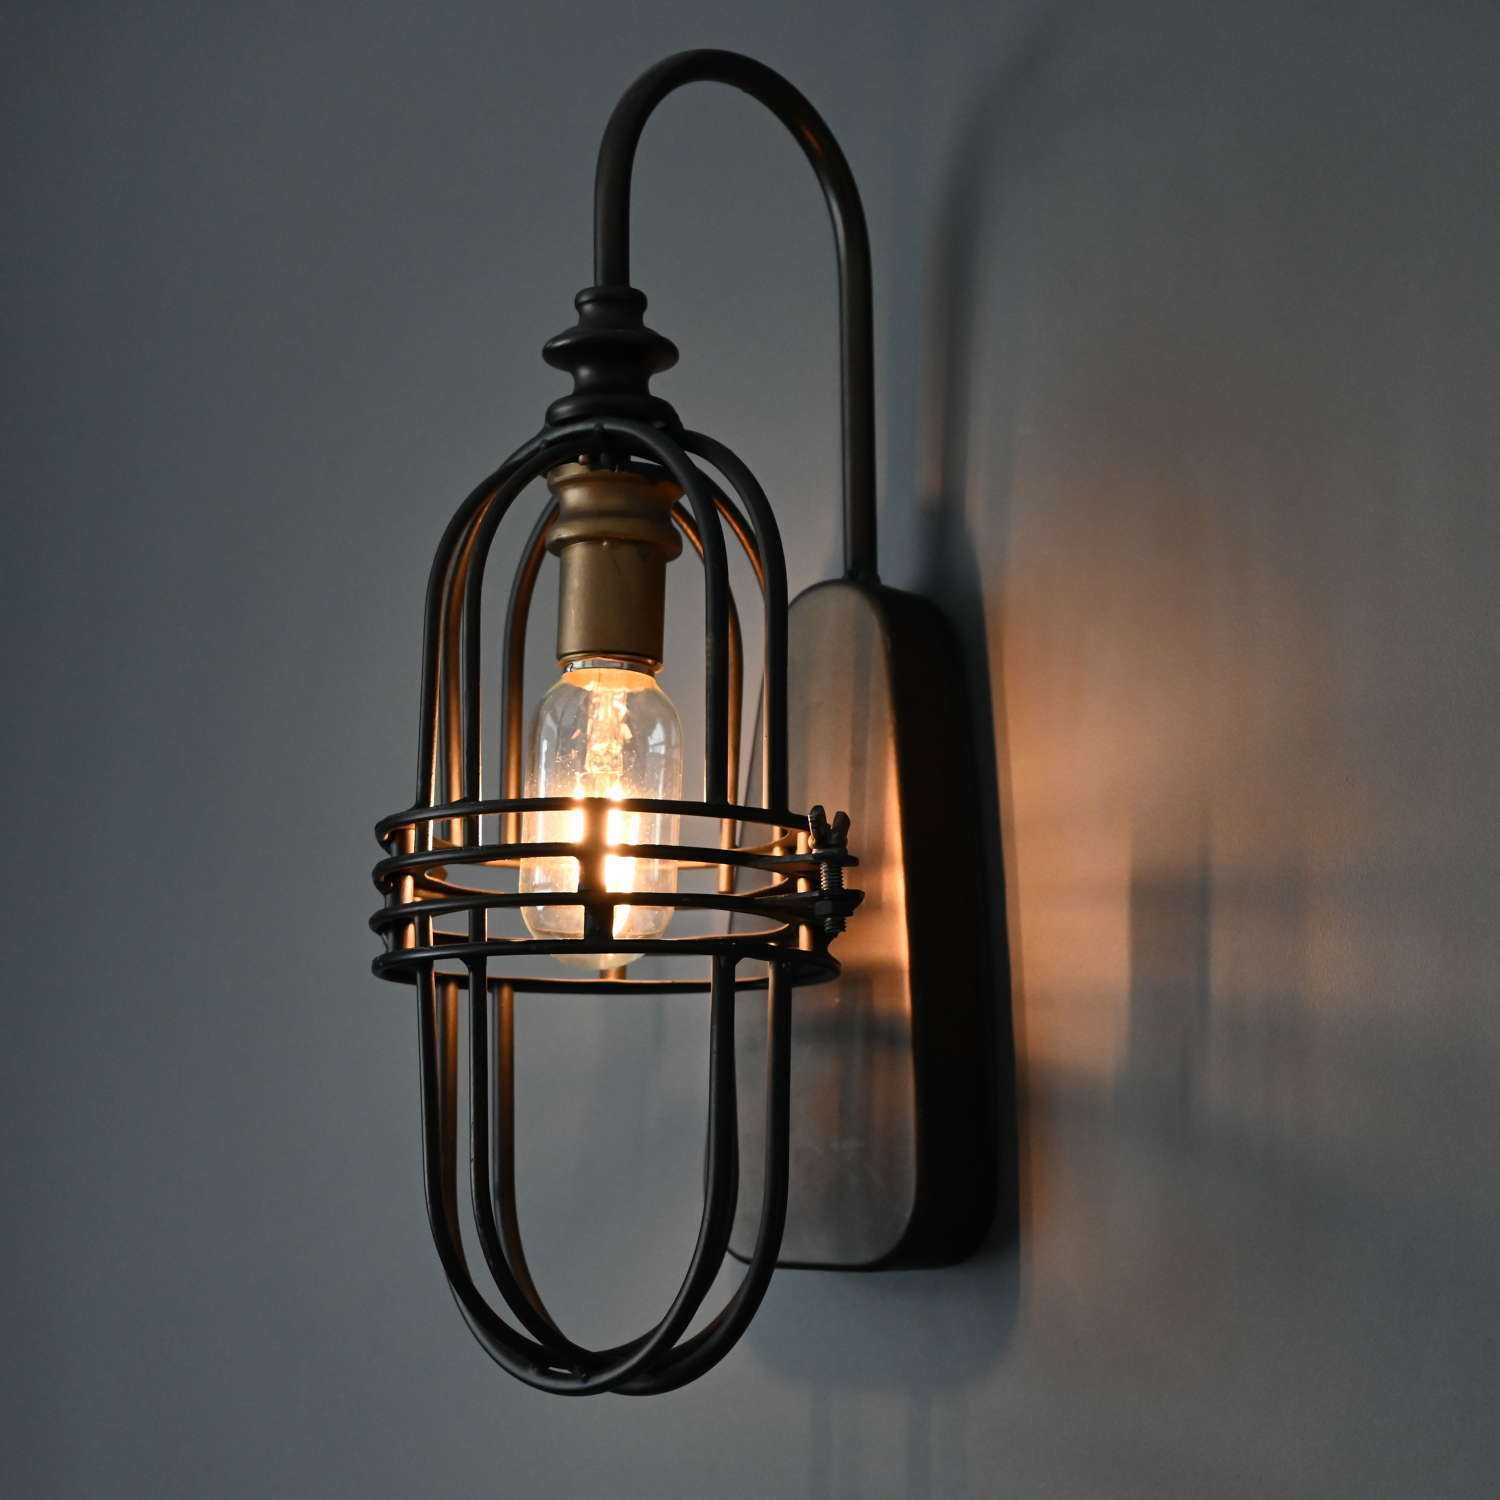 Industrial black metal battery operated wall light